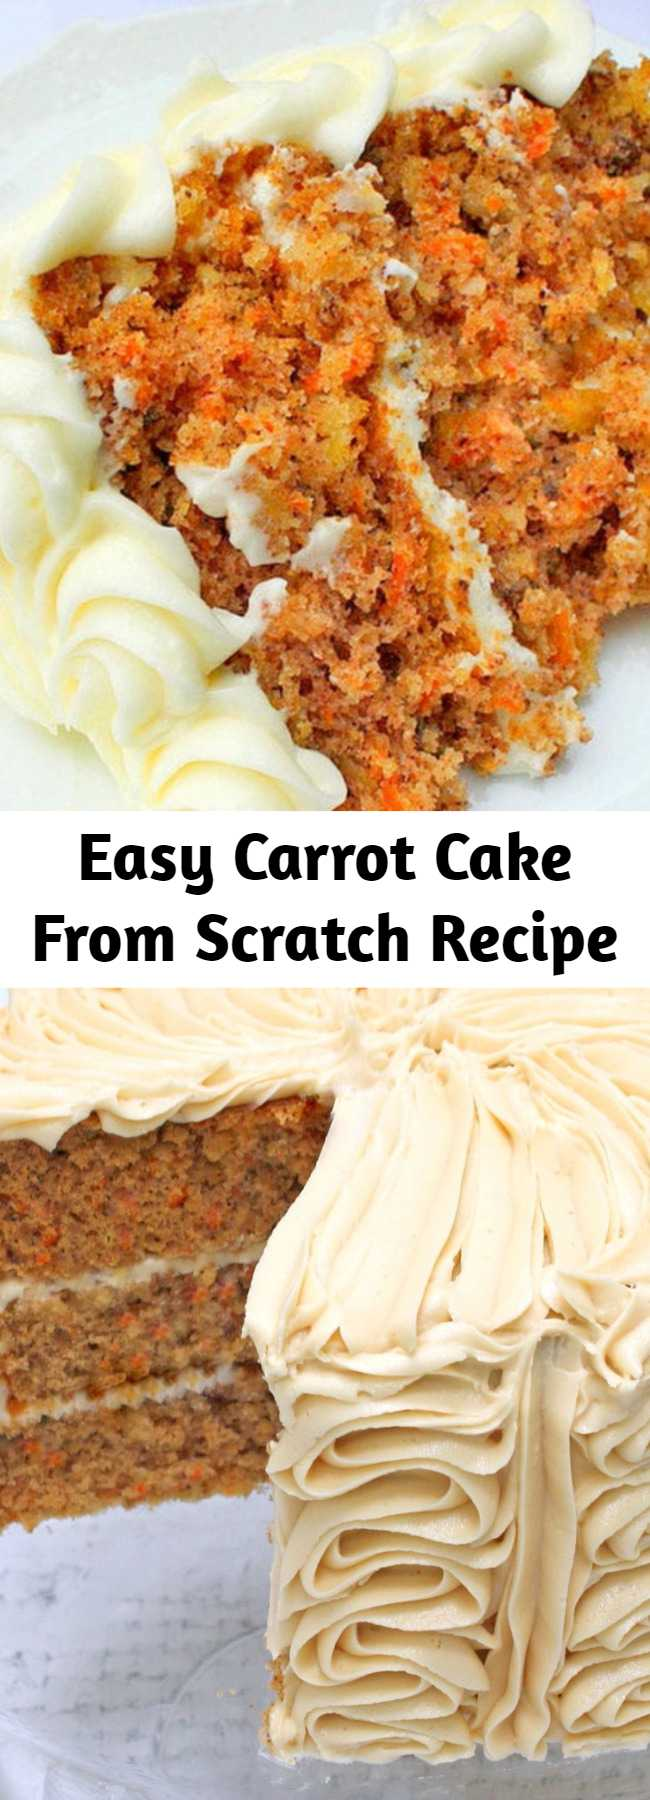 Easy Carrot Cake From Scratch Recipe - This scratch Carrot Cake is my FAVORITE cake, and one of our most popular recipes on the site! Carrot cake with crushed pineapple, pecans, coconut, and spices!